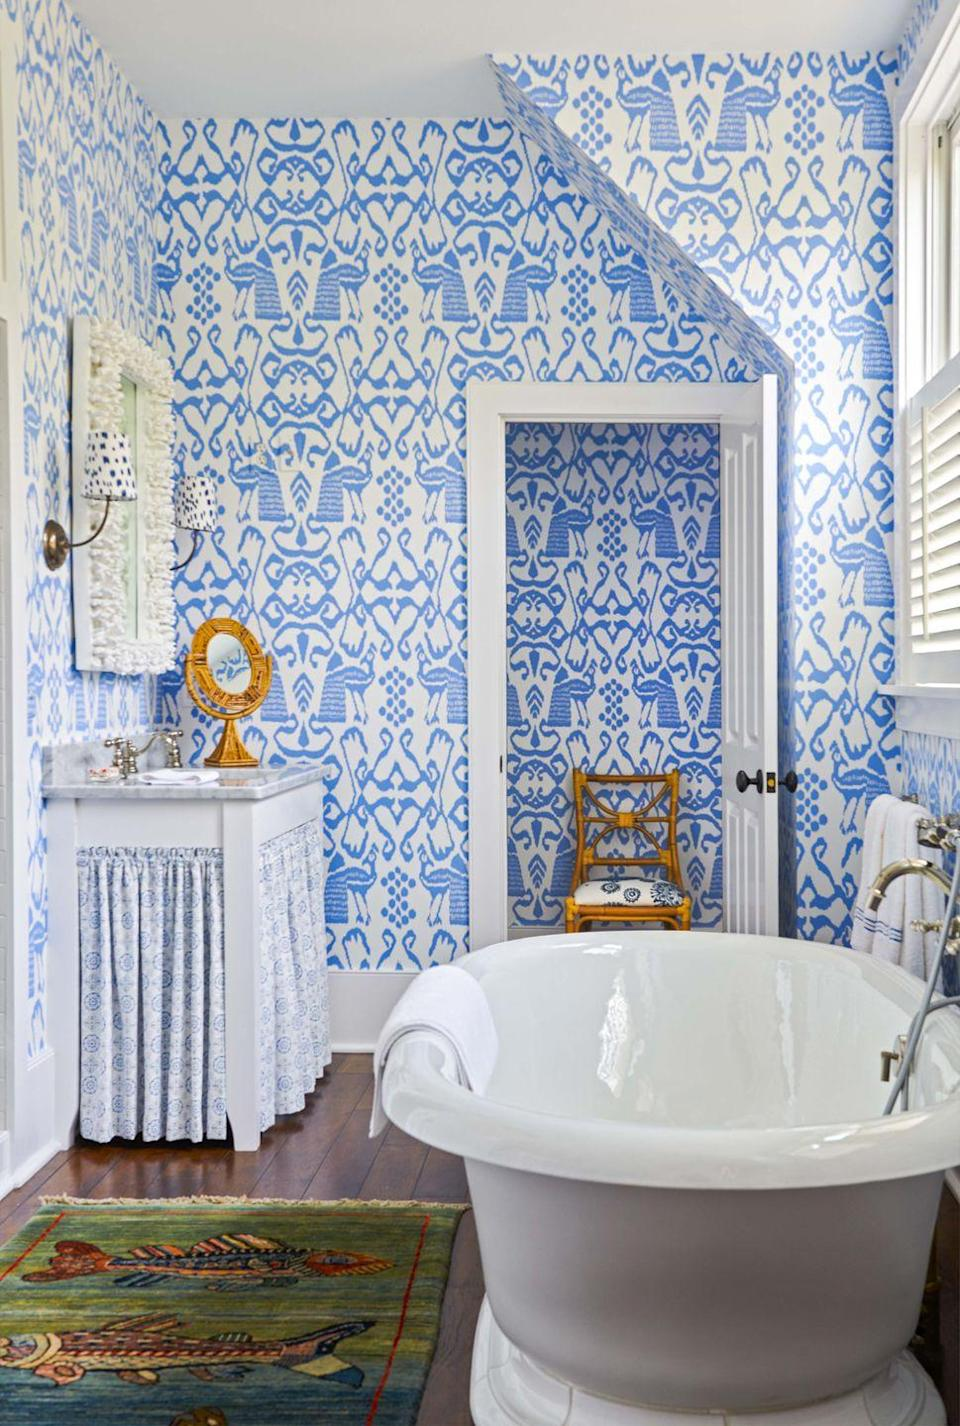 """<p>Speaking of pattern-happy: This bathroom by <a href=""""https://www.housebeautiful.com/design-inspiration/house-tours/a30696941/charlotte-barnes-palmetto-bluff/"""" rel=""""nofollow noopener"""" target=""""_blank"""" data-ylk=""""slk:Charlotte Barnes"""" class=""""link rapid-noclick-resp"""">Charlotte Barnes </a>is a blue-and-white dream, and continuing the same Quadrille pattern into the adjacent room makes for a satisfying visual. </p>"""